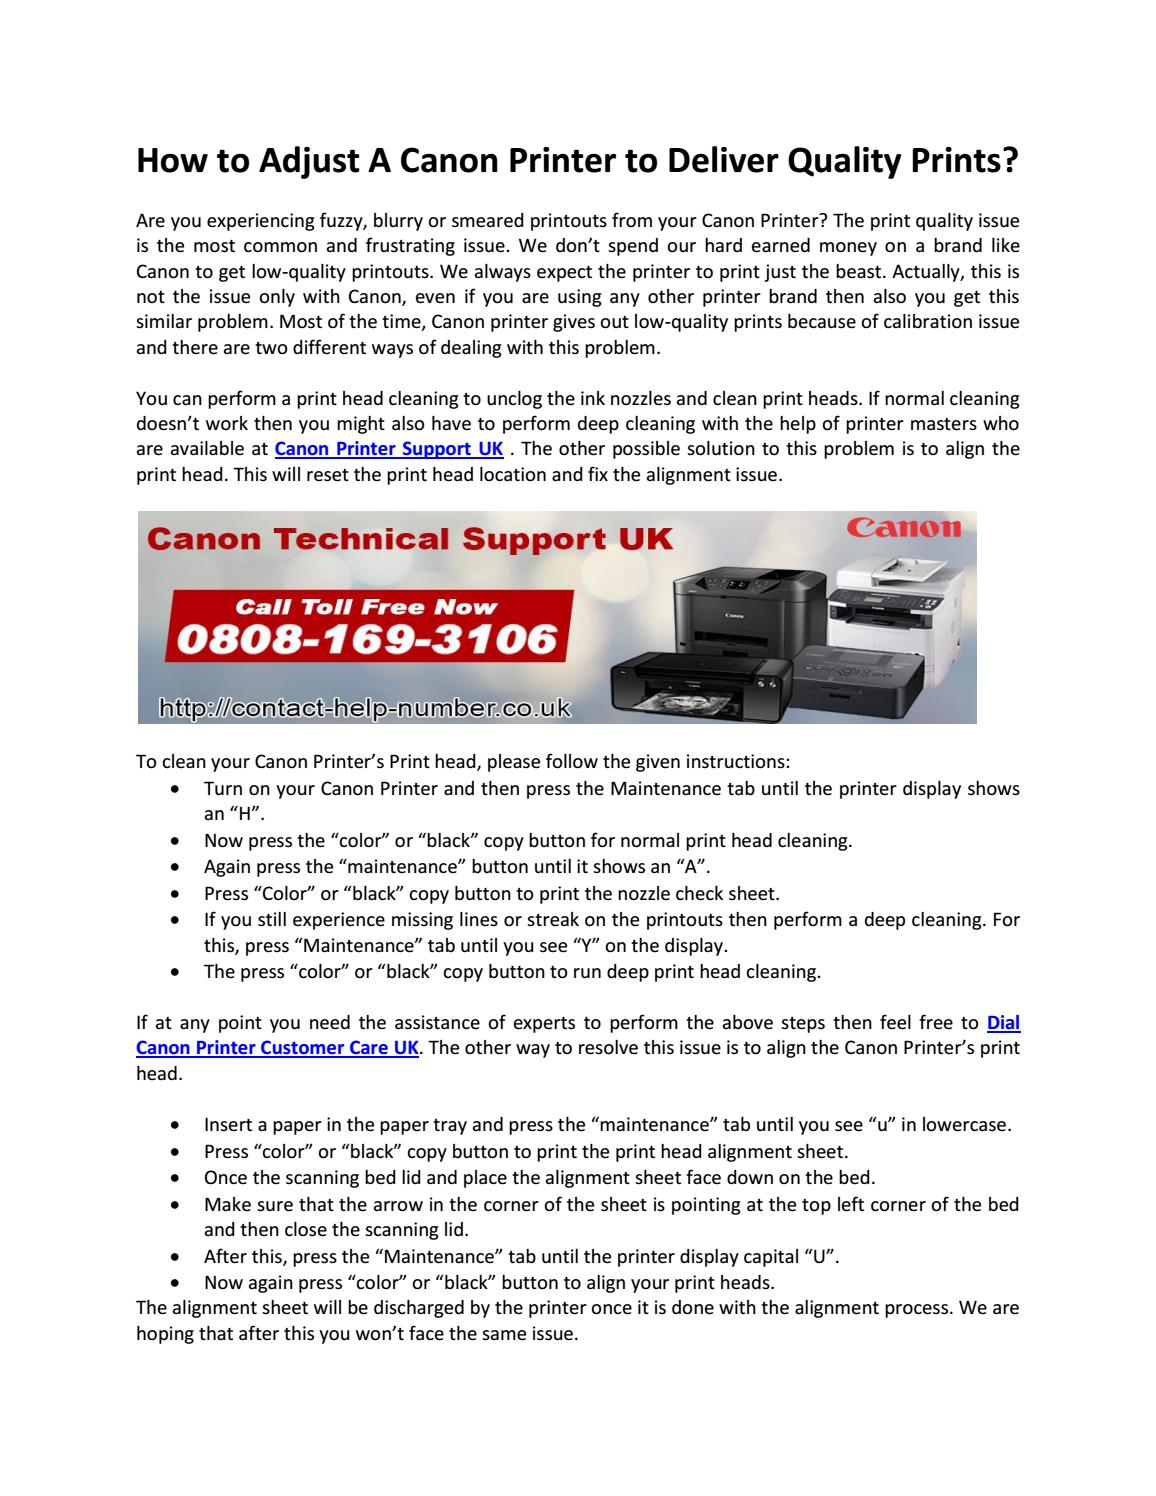 How to Adjust A Canon Printer to Deliver Quality Prints? by